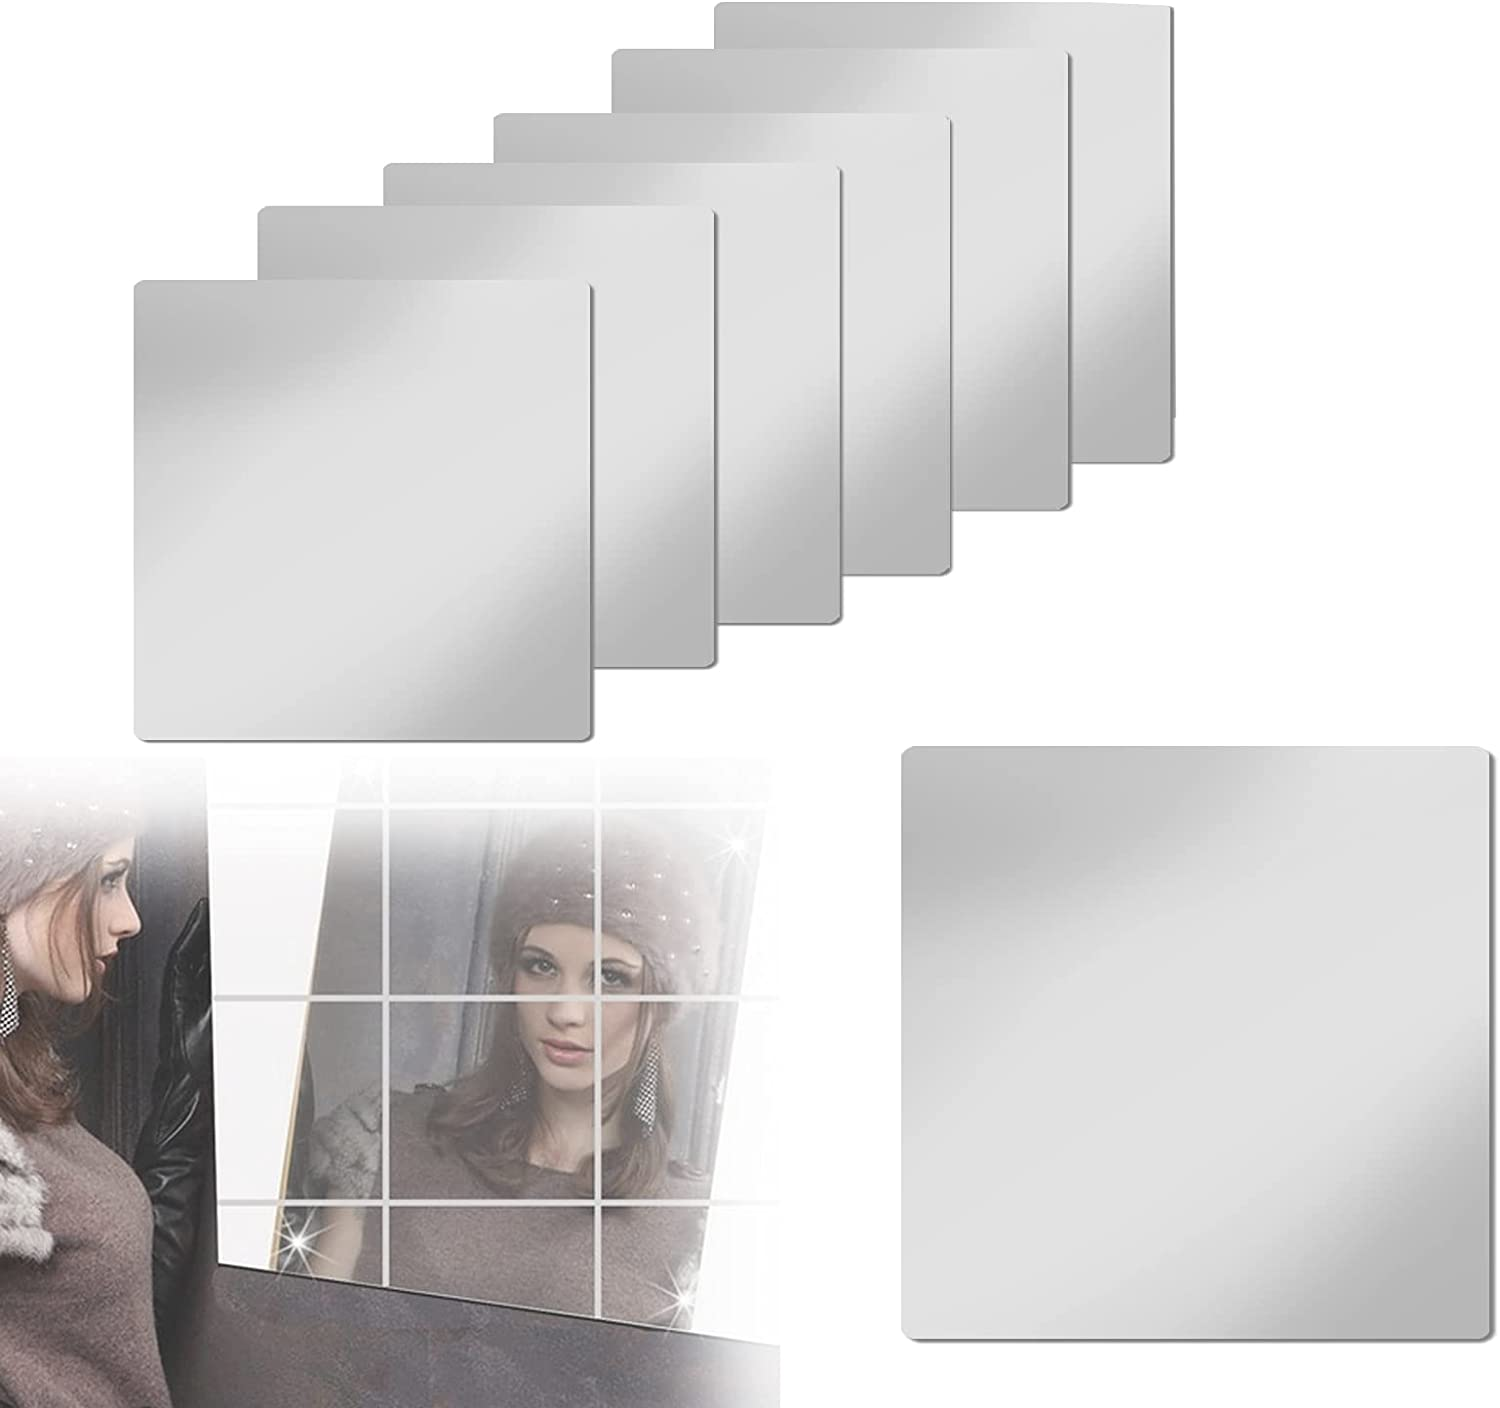 6 Pcs Flexible Mirror Sheets, Non Glass Self Adhesive Mirrors Tiles Mirror Stickers for Home Wall Decor(12 x 12 Inch)